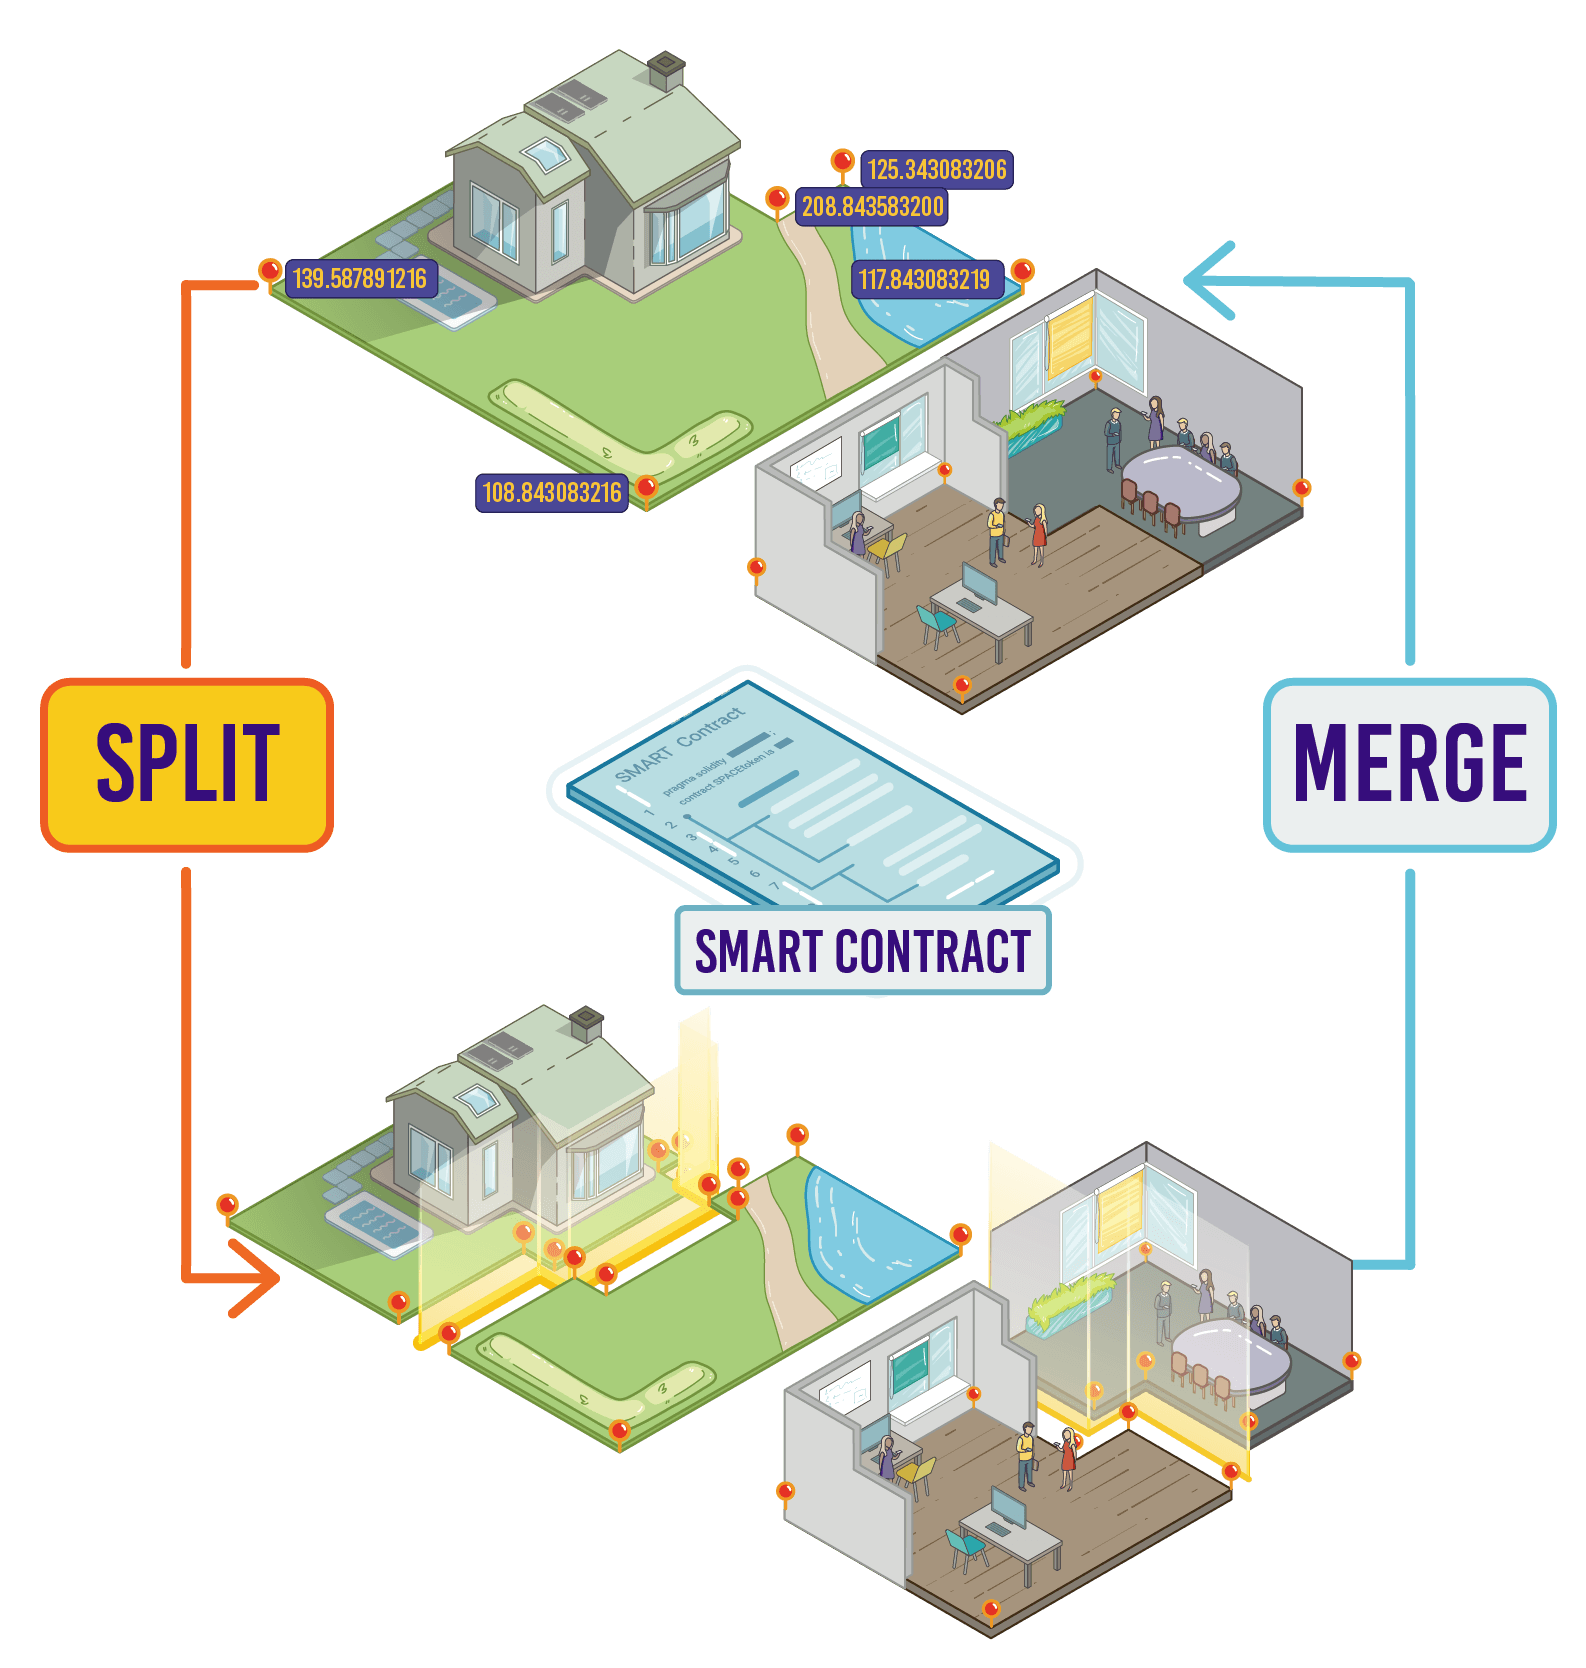 Smart contract Land surveying